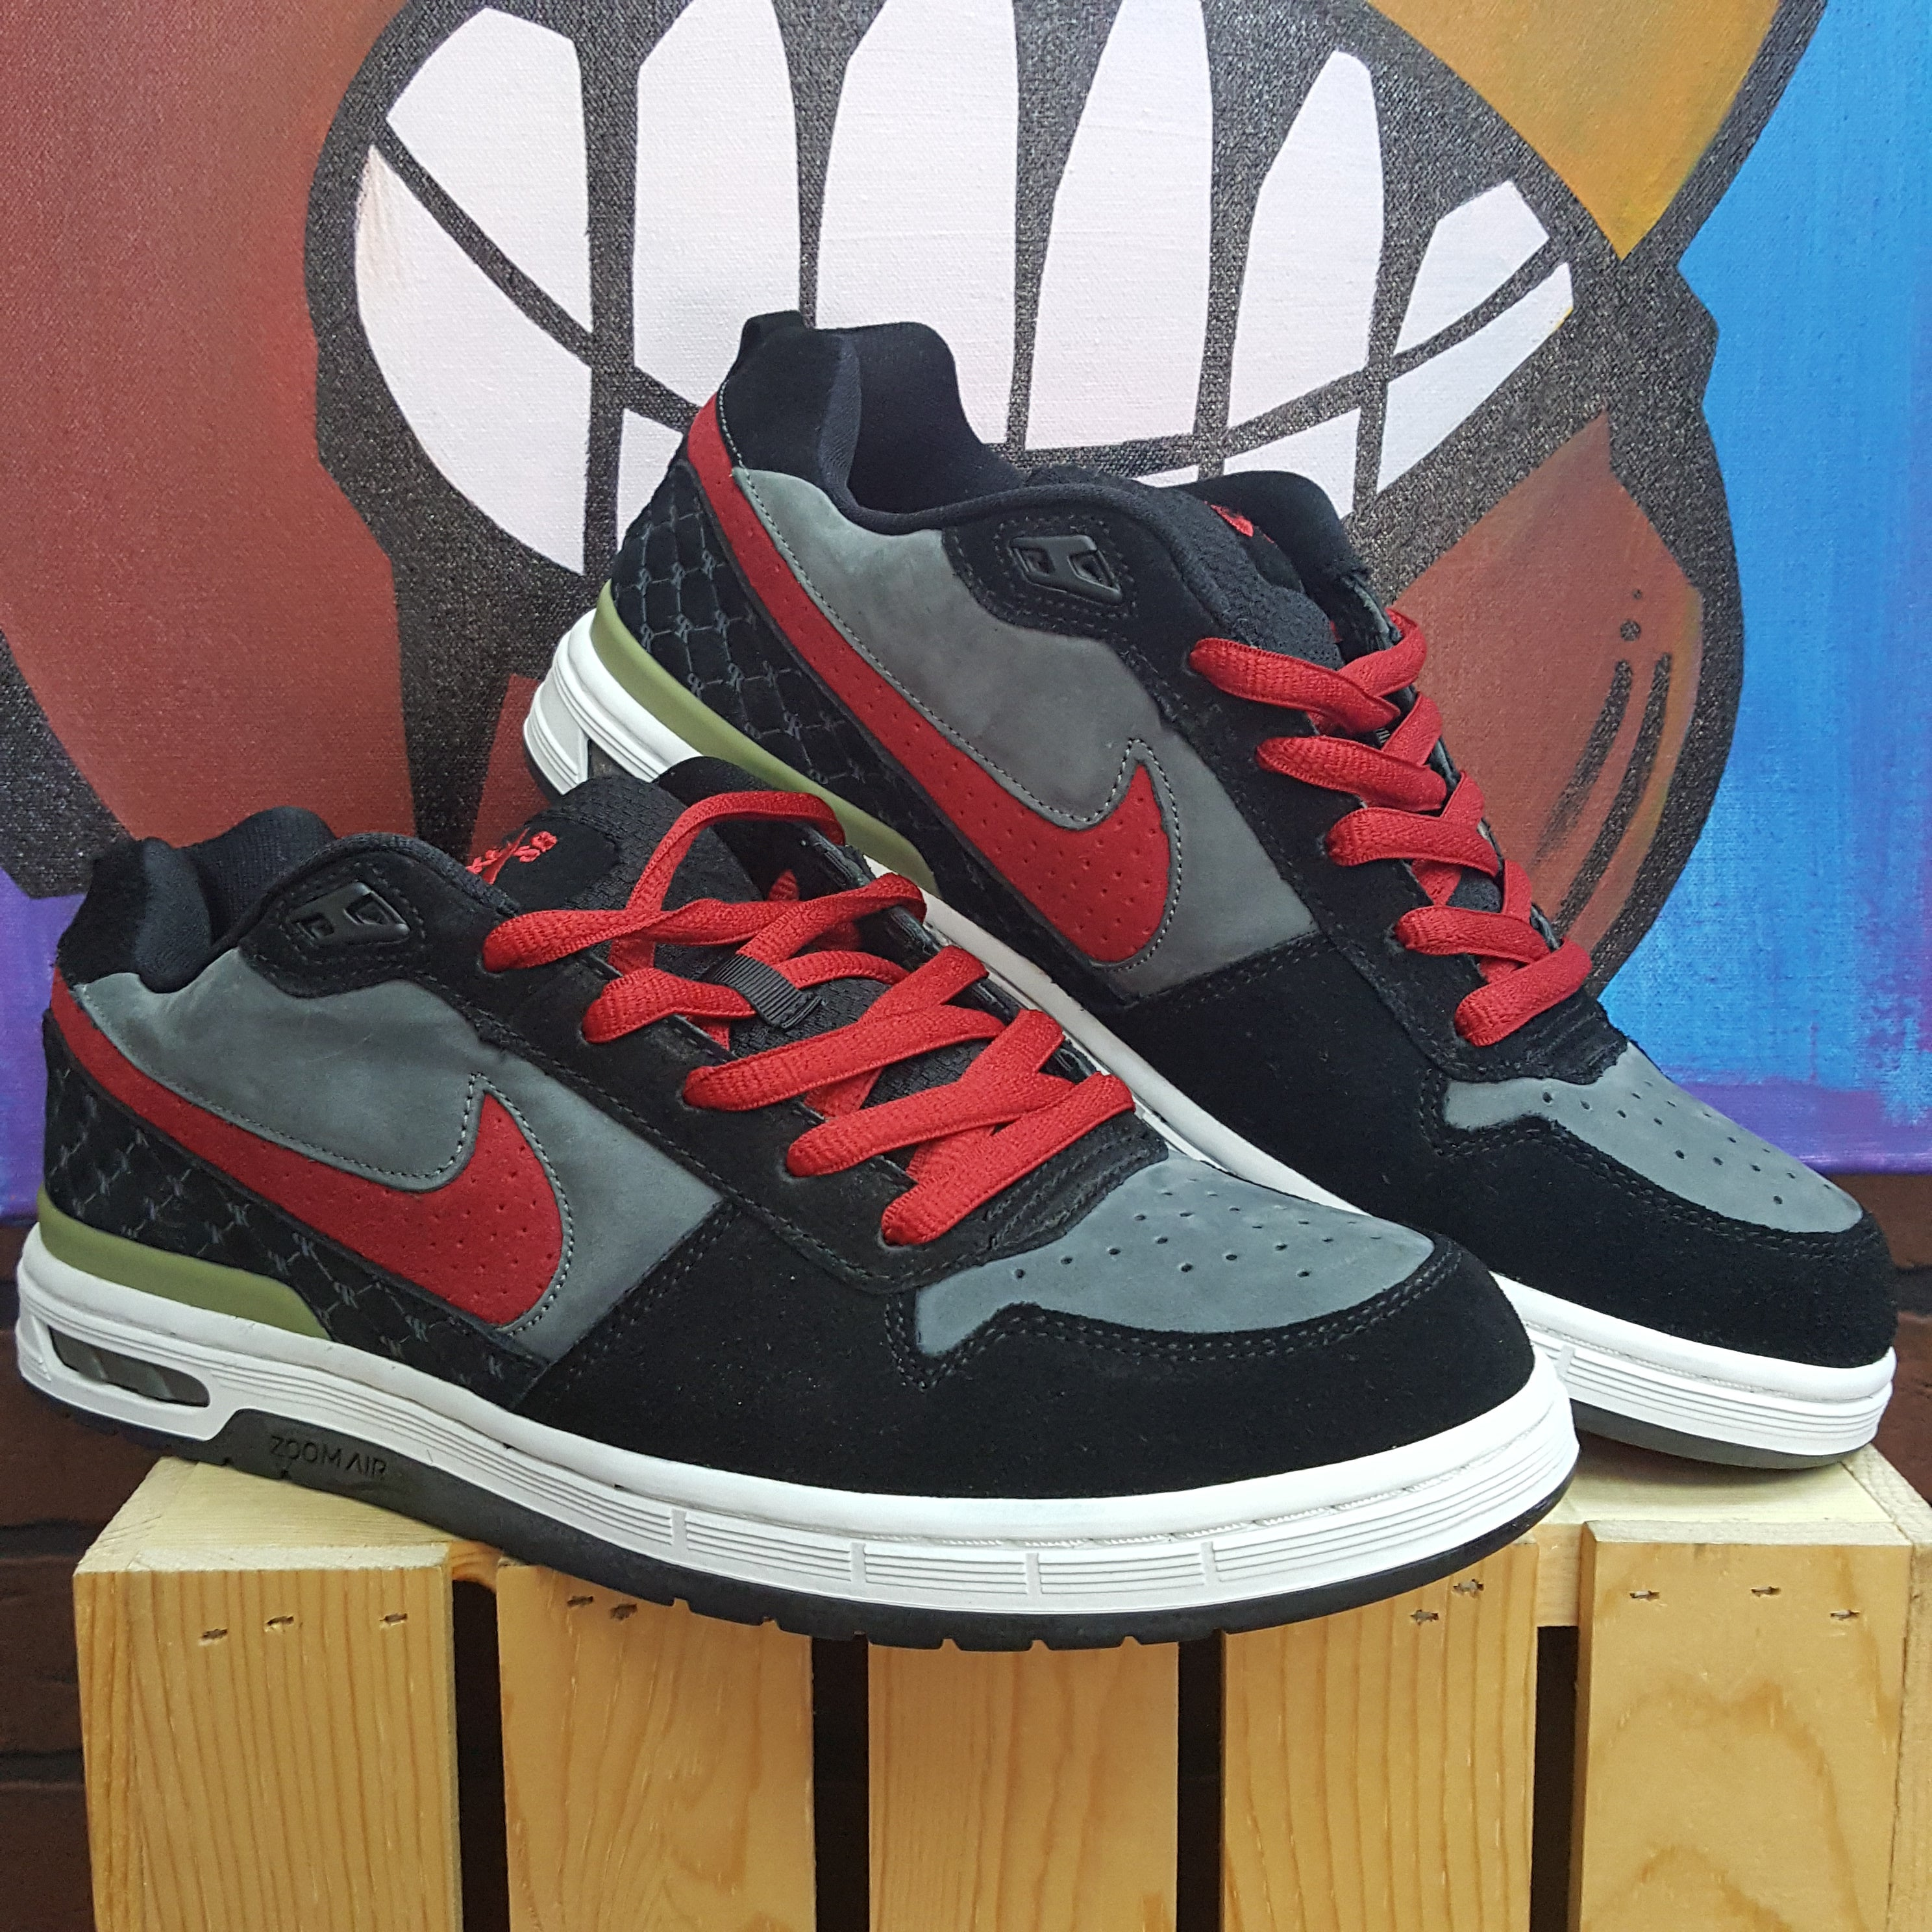 b1616736be34 Nike SB Zoom Air Low Dunks Paul Rodriguez - Size 11.5 – Divi s ...